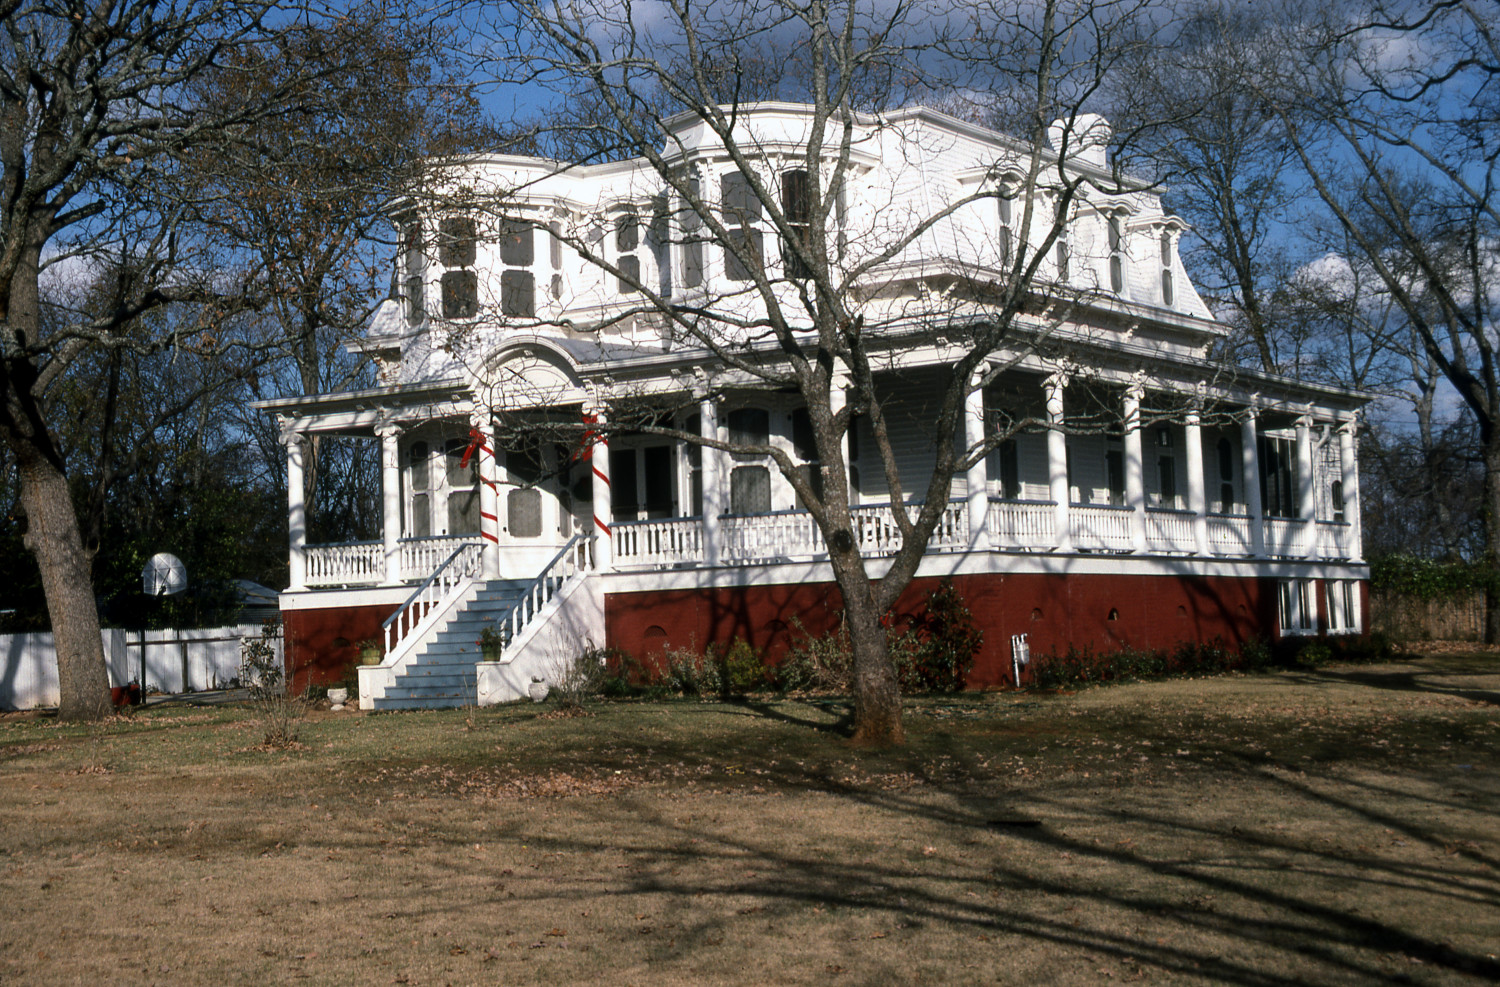 [412 S. Royall], Close-up photograph of the southwest corner of a two-story white house with blue and red accents, located at 416 S. Royall in Palestine, Texas.,